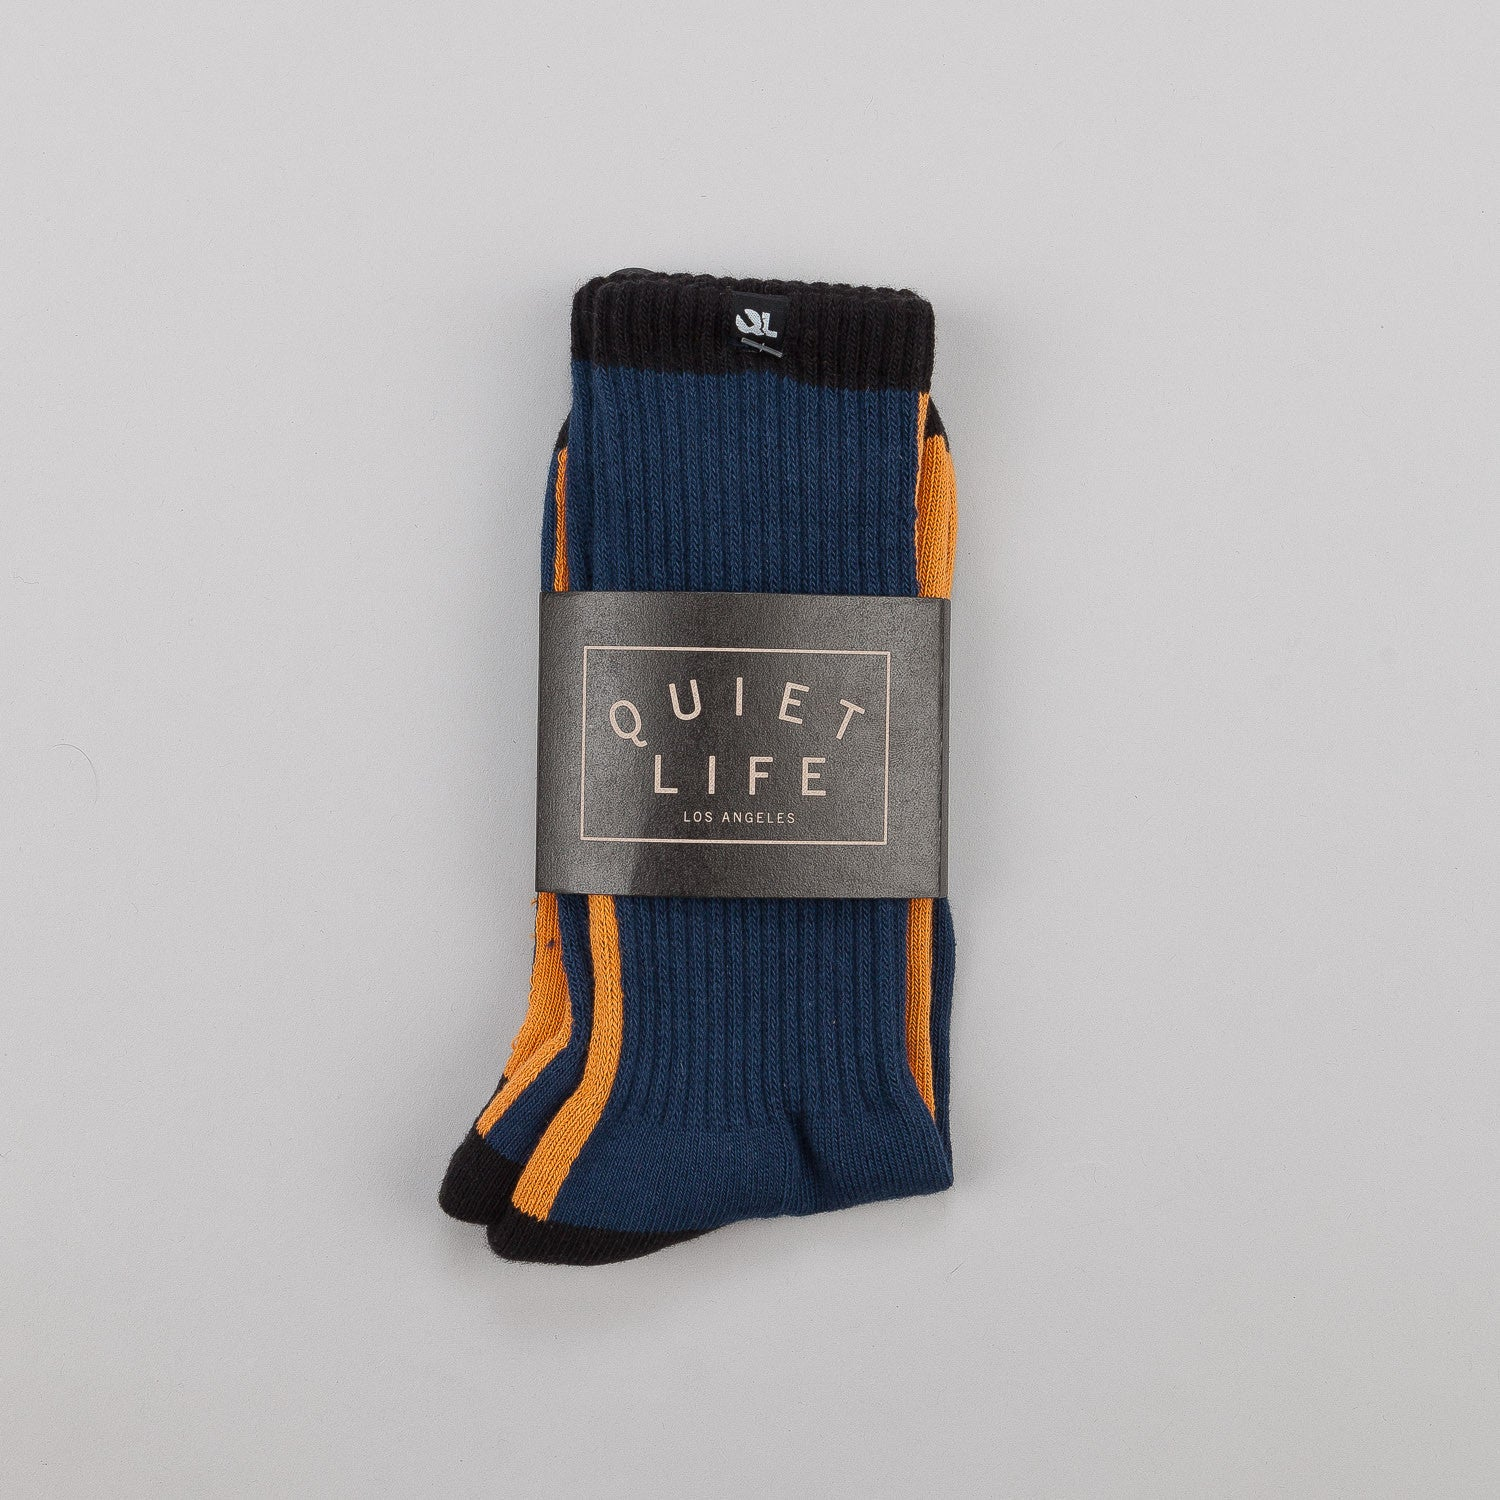 The Quiet Life 2 Faced Socks